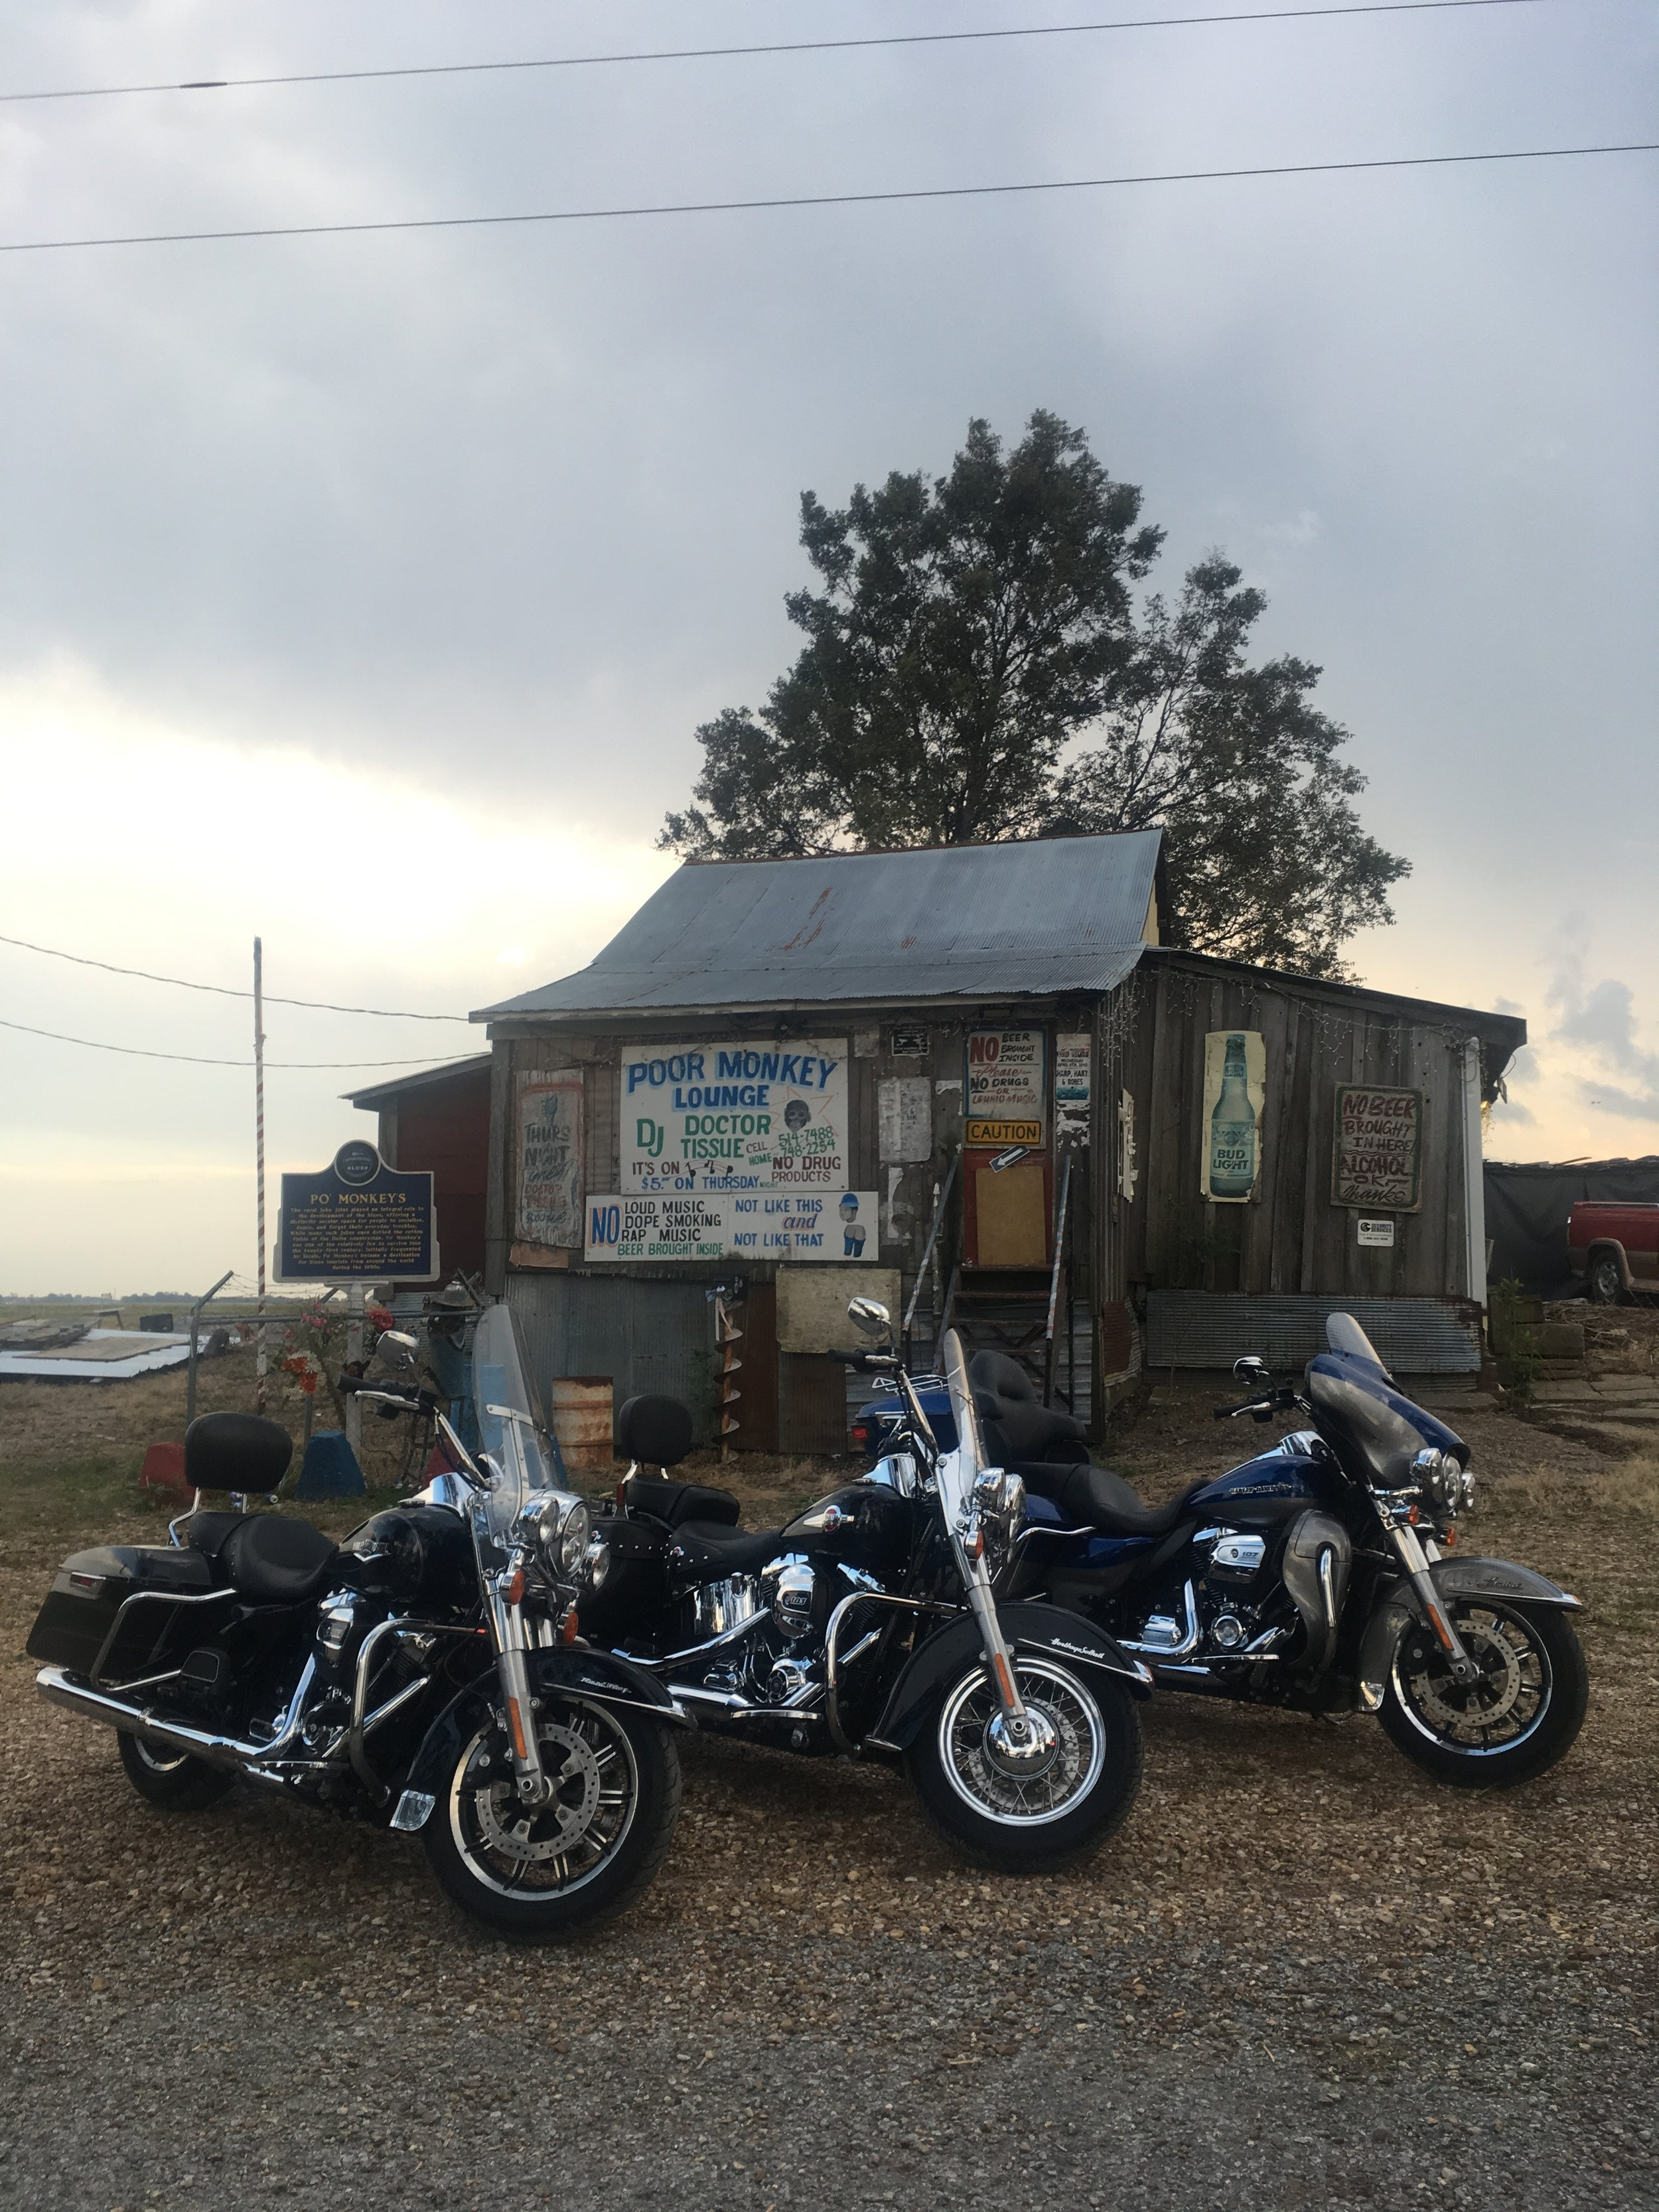 An old blues juke joint called Poor Monkey Lounge. This is located outside of Merigold, Mississippi